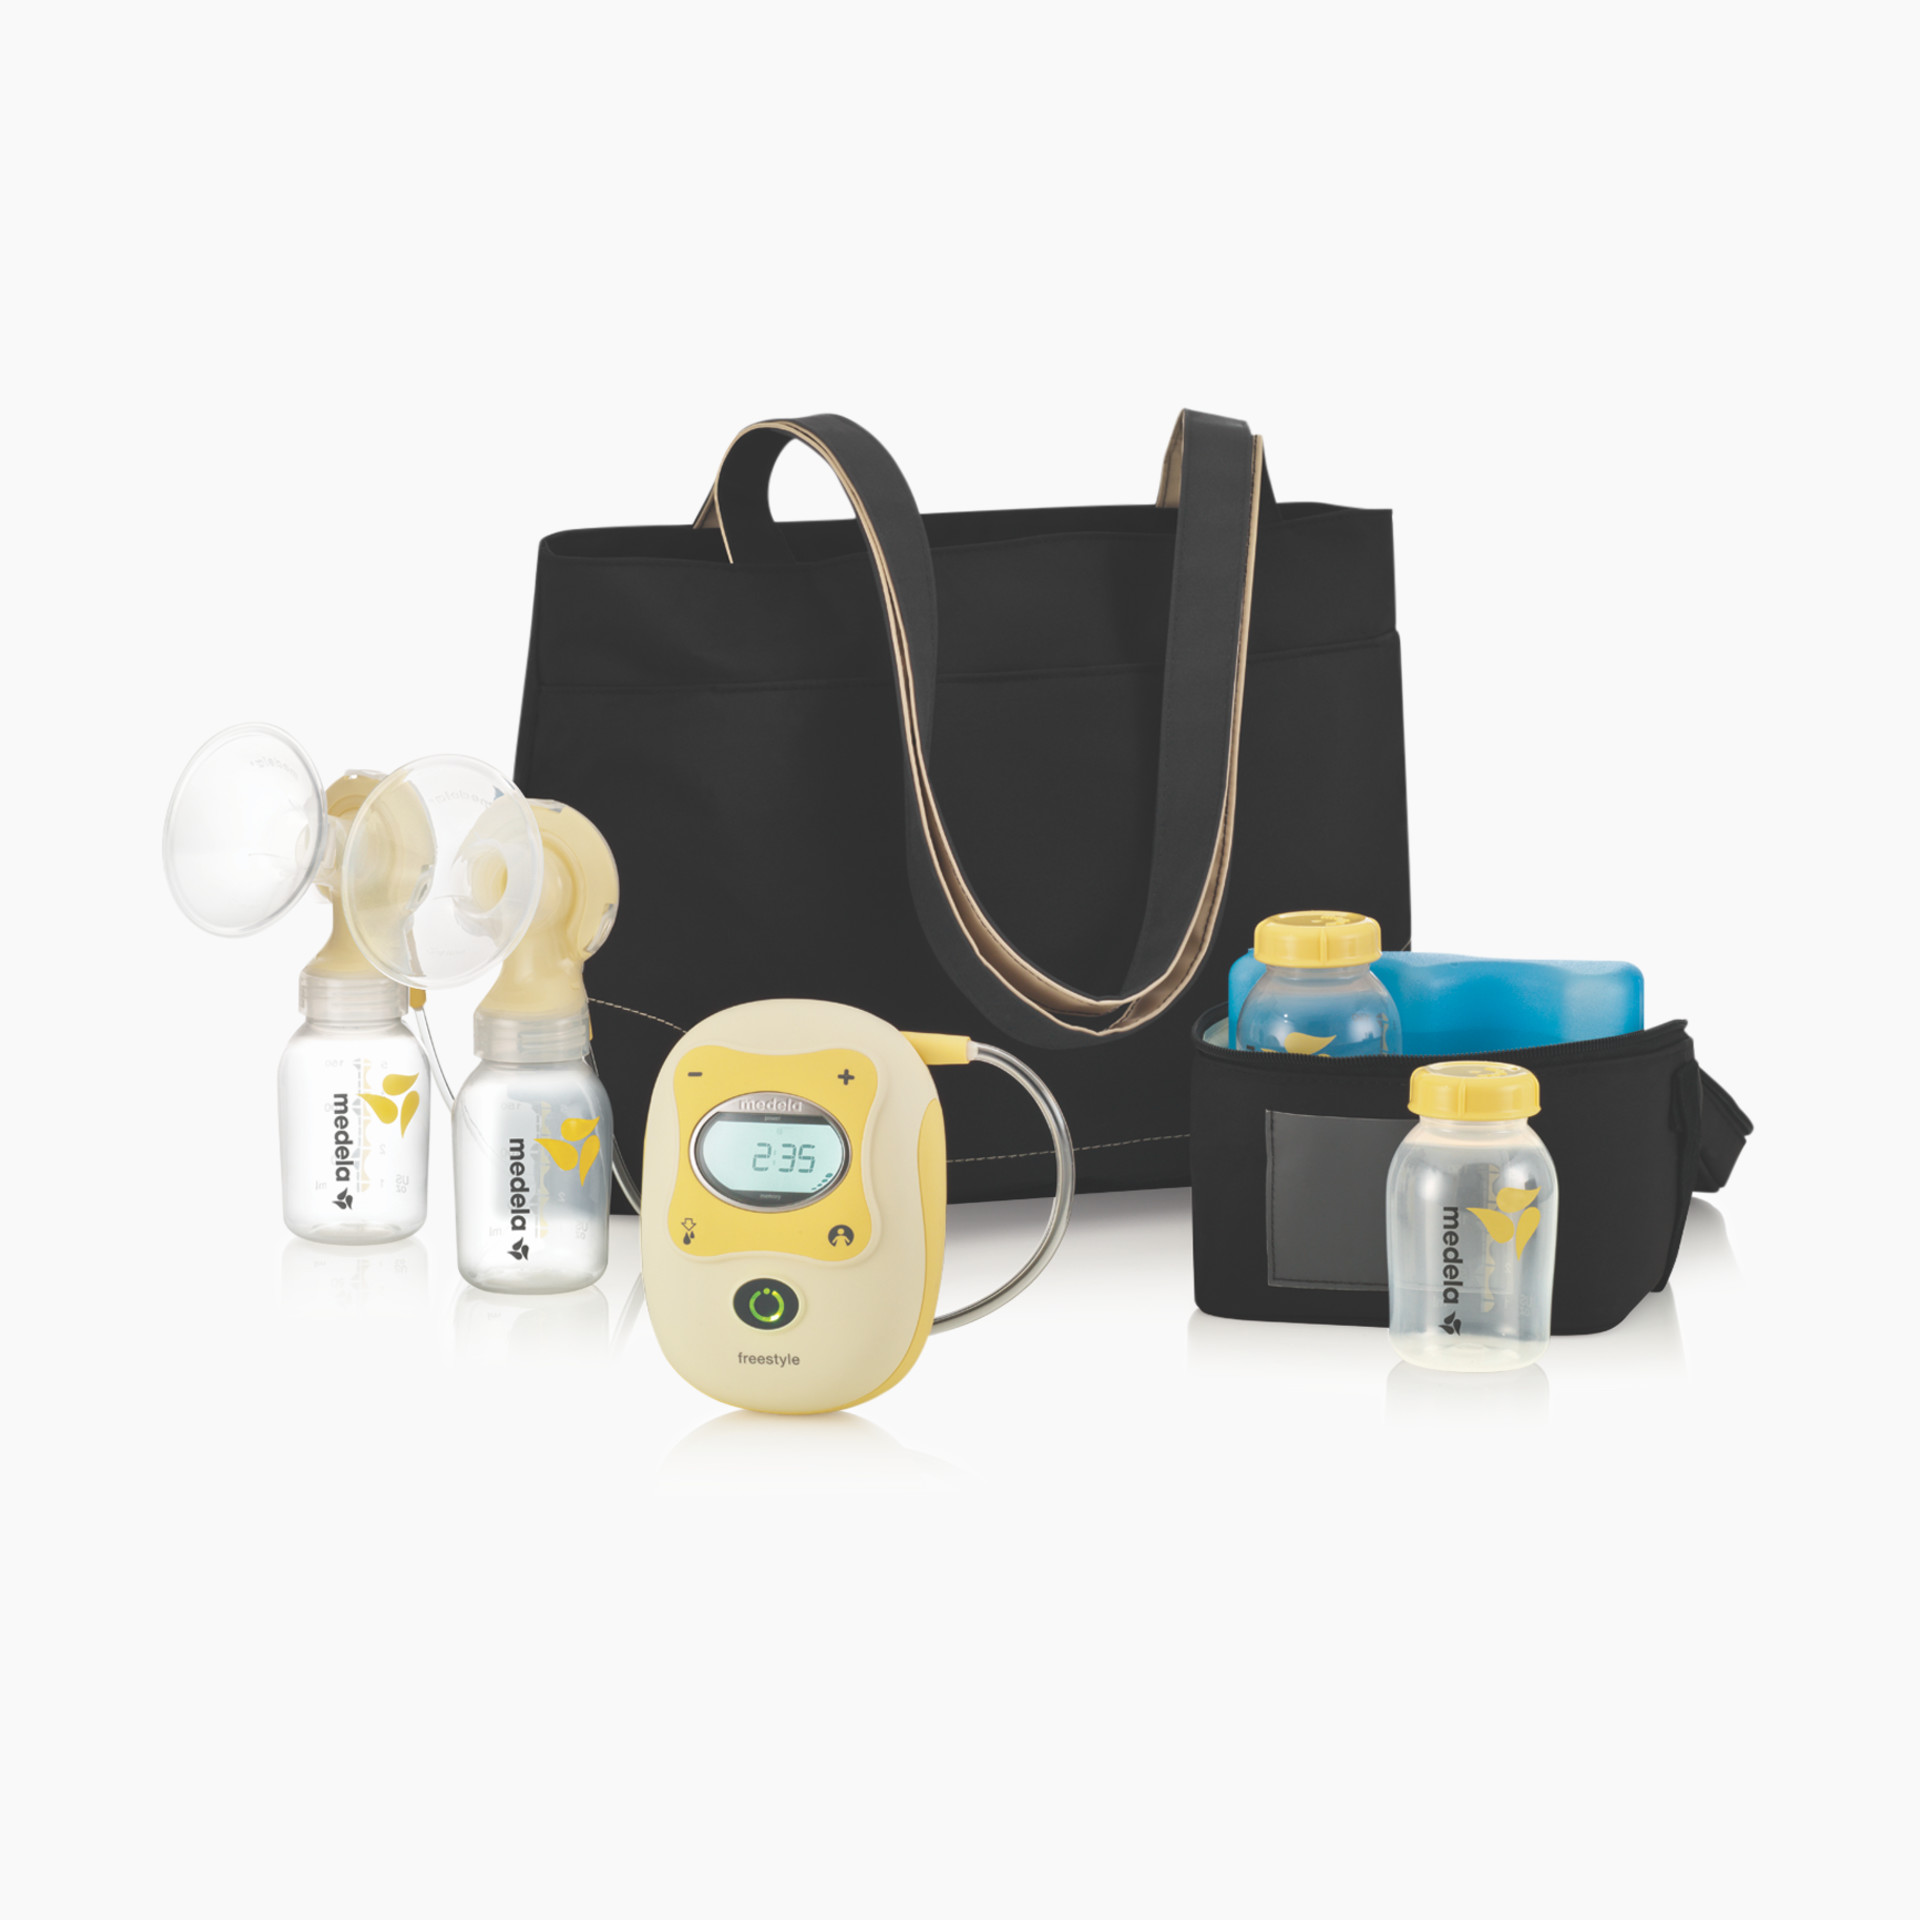 Medela Freestyle Double Electric Breast Pump Babylist Store